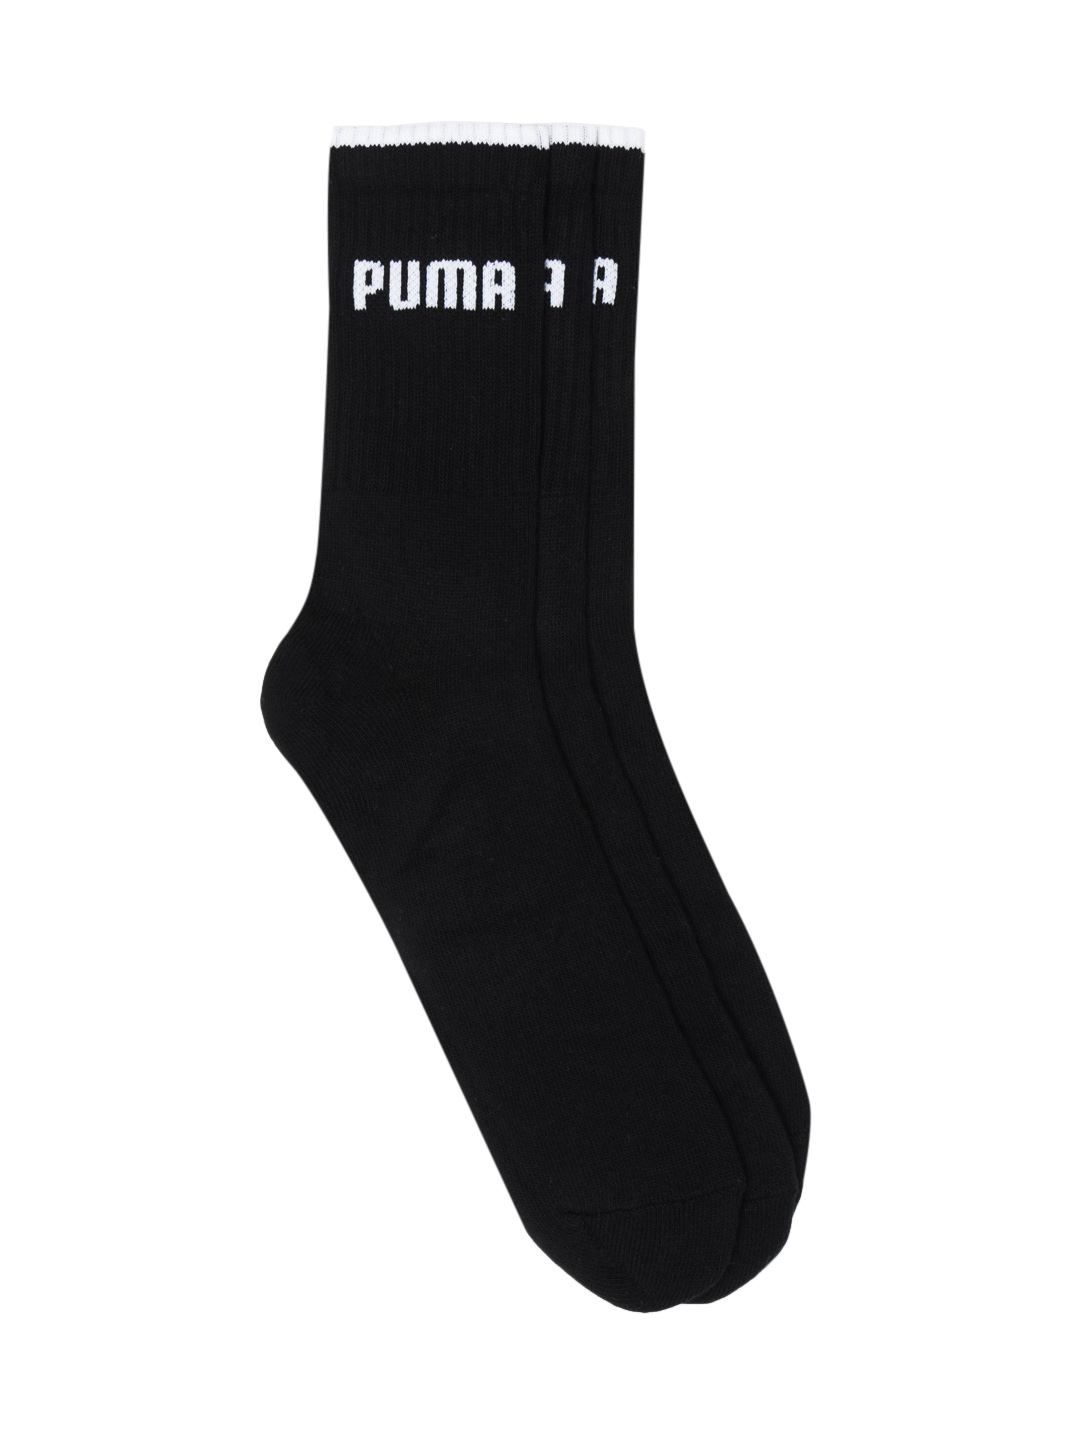 Puma Men Pair Of 3 Socks